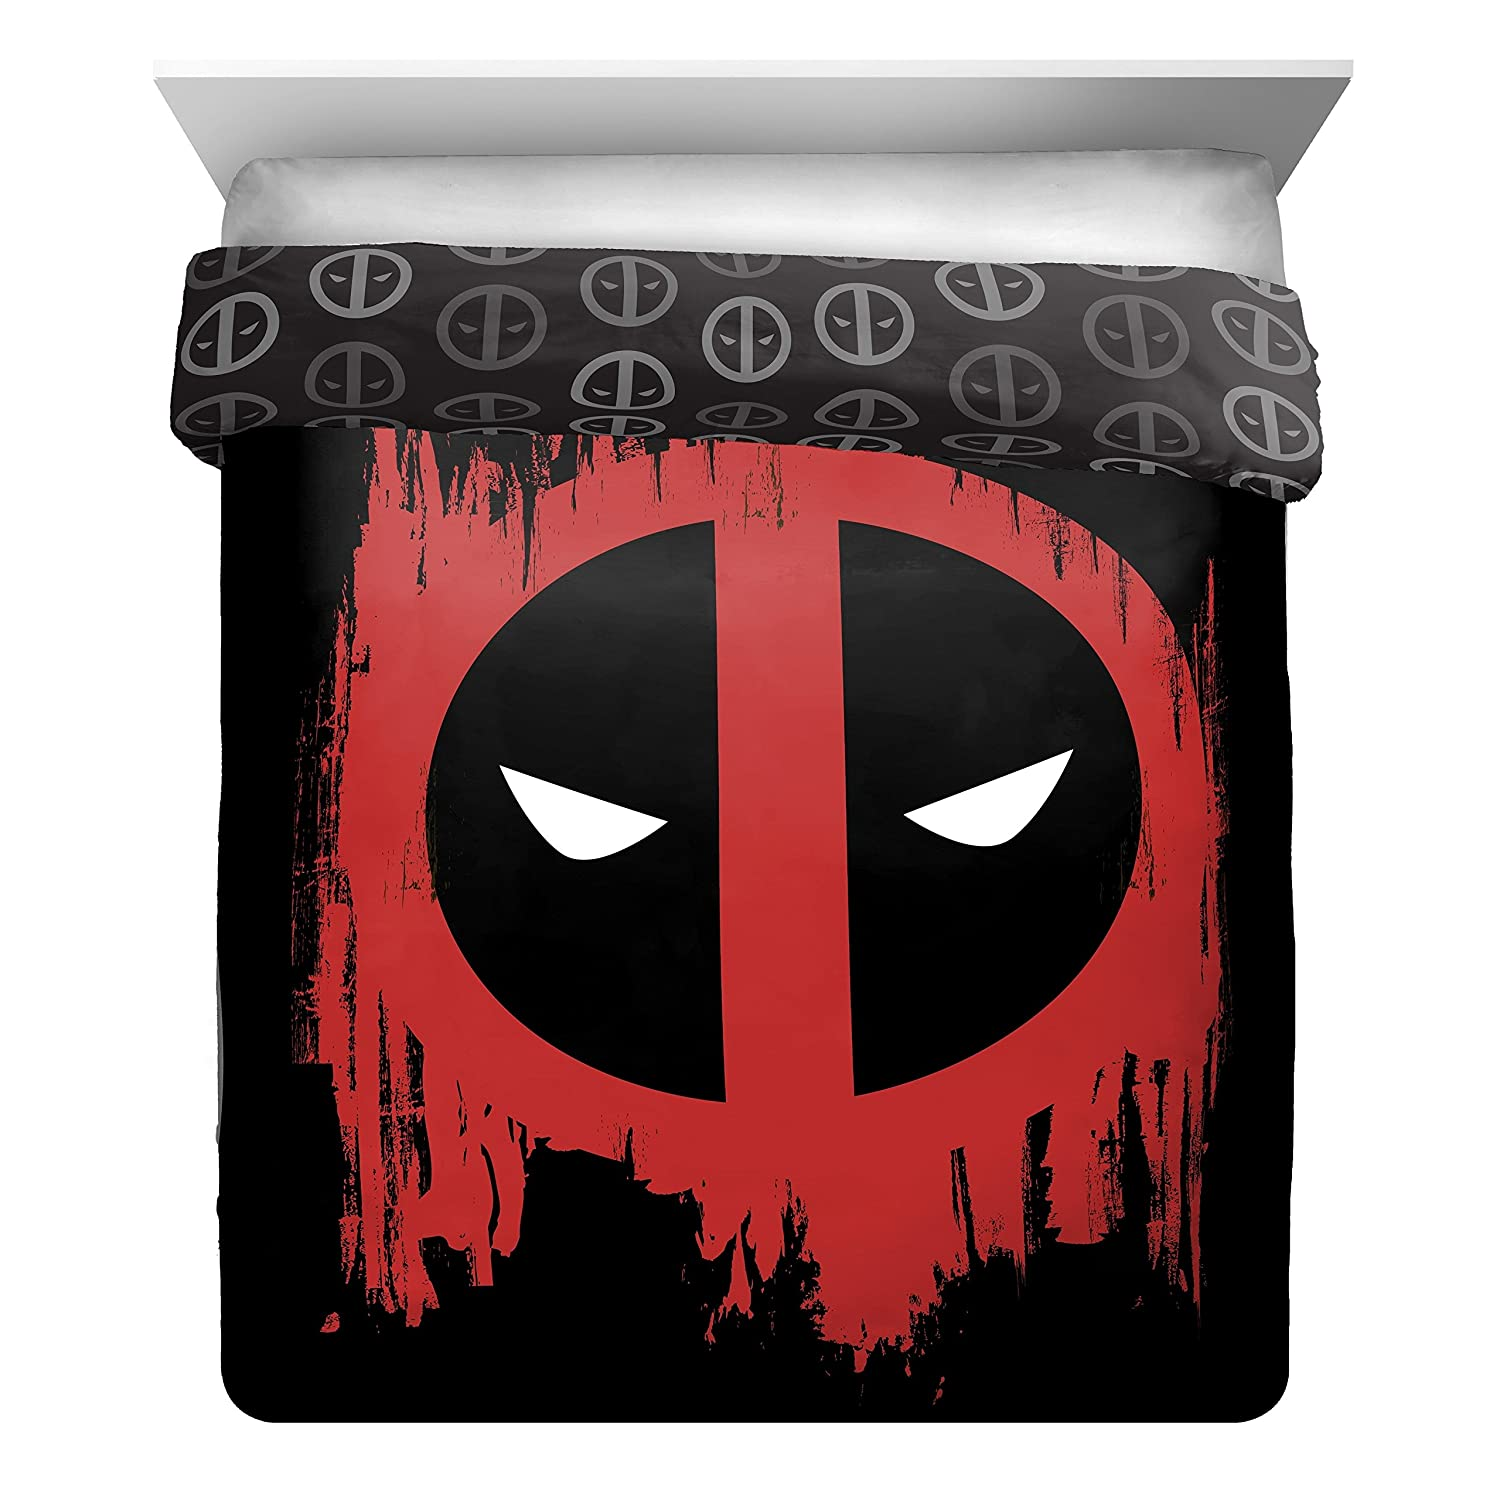 1 Piece Black Red Deadpool Superhero Theme Reversible Comforter Full Size, Beautiful Marvel Comic Iconic Superheroes, Animated Movie Character Print Bedding, Bold Colors, Casual Style, Plush Polyester